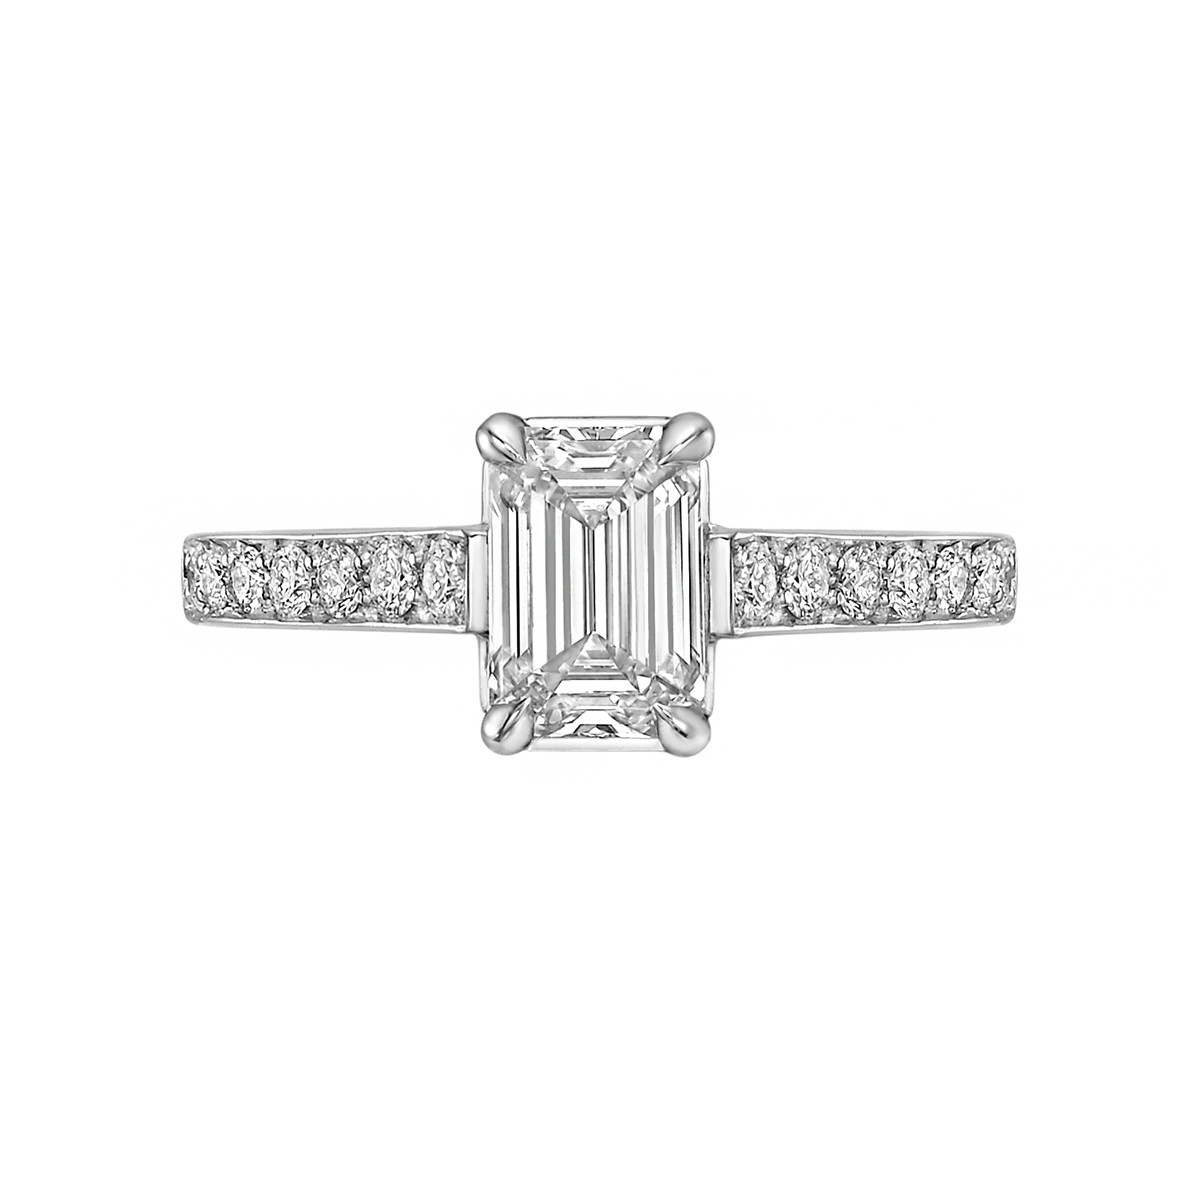 1.01ct Emerald-Cut Diamond Ring (E/VS1)